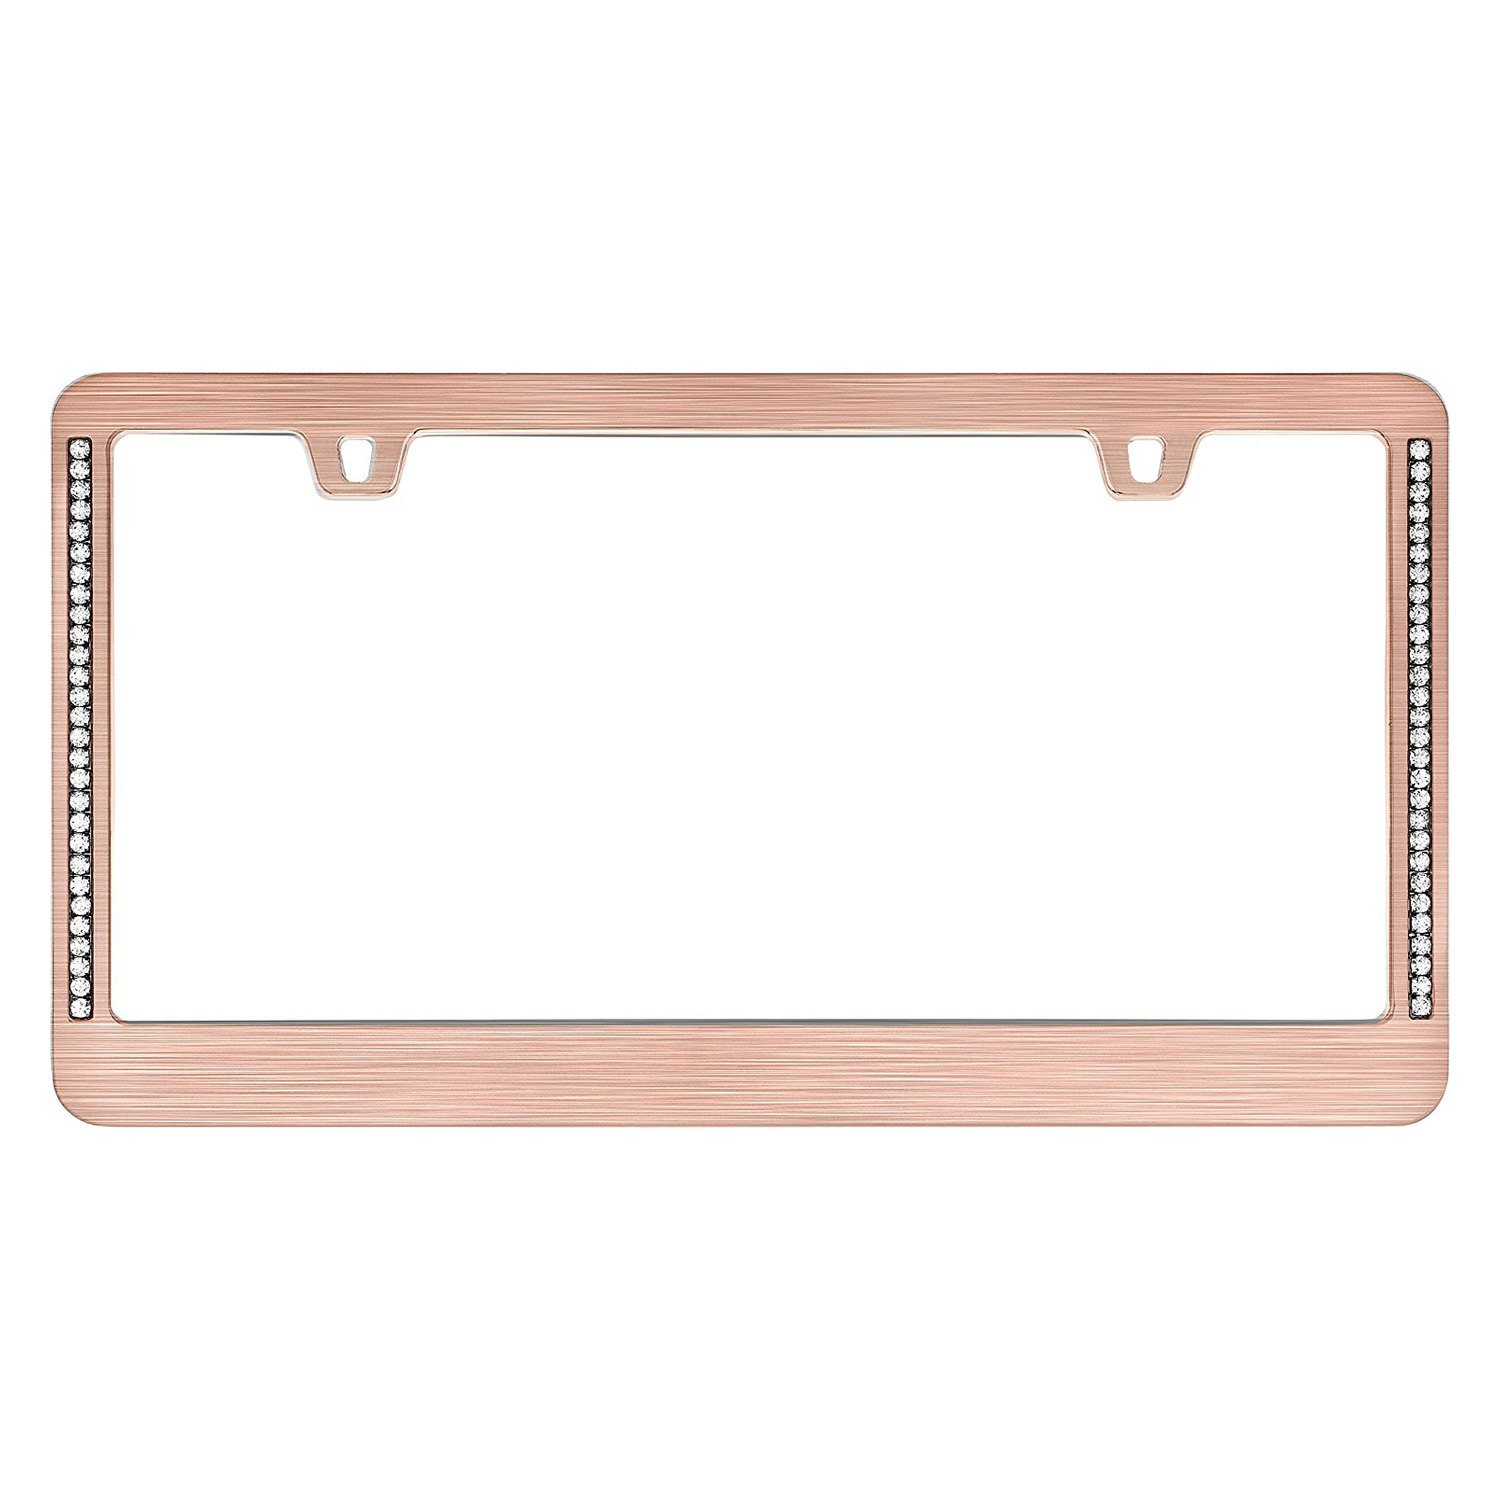 Cruiser® 15000 - Neo Diamondesque Style Rose Gold License Plate Frame